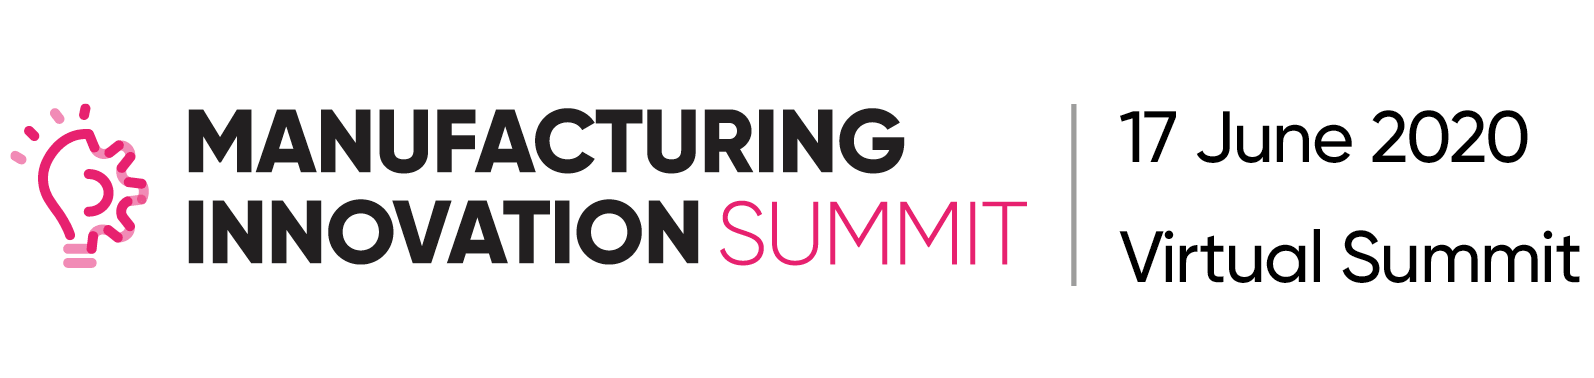 Manufacturing Innovation Summit logo